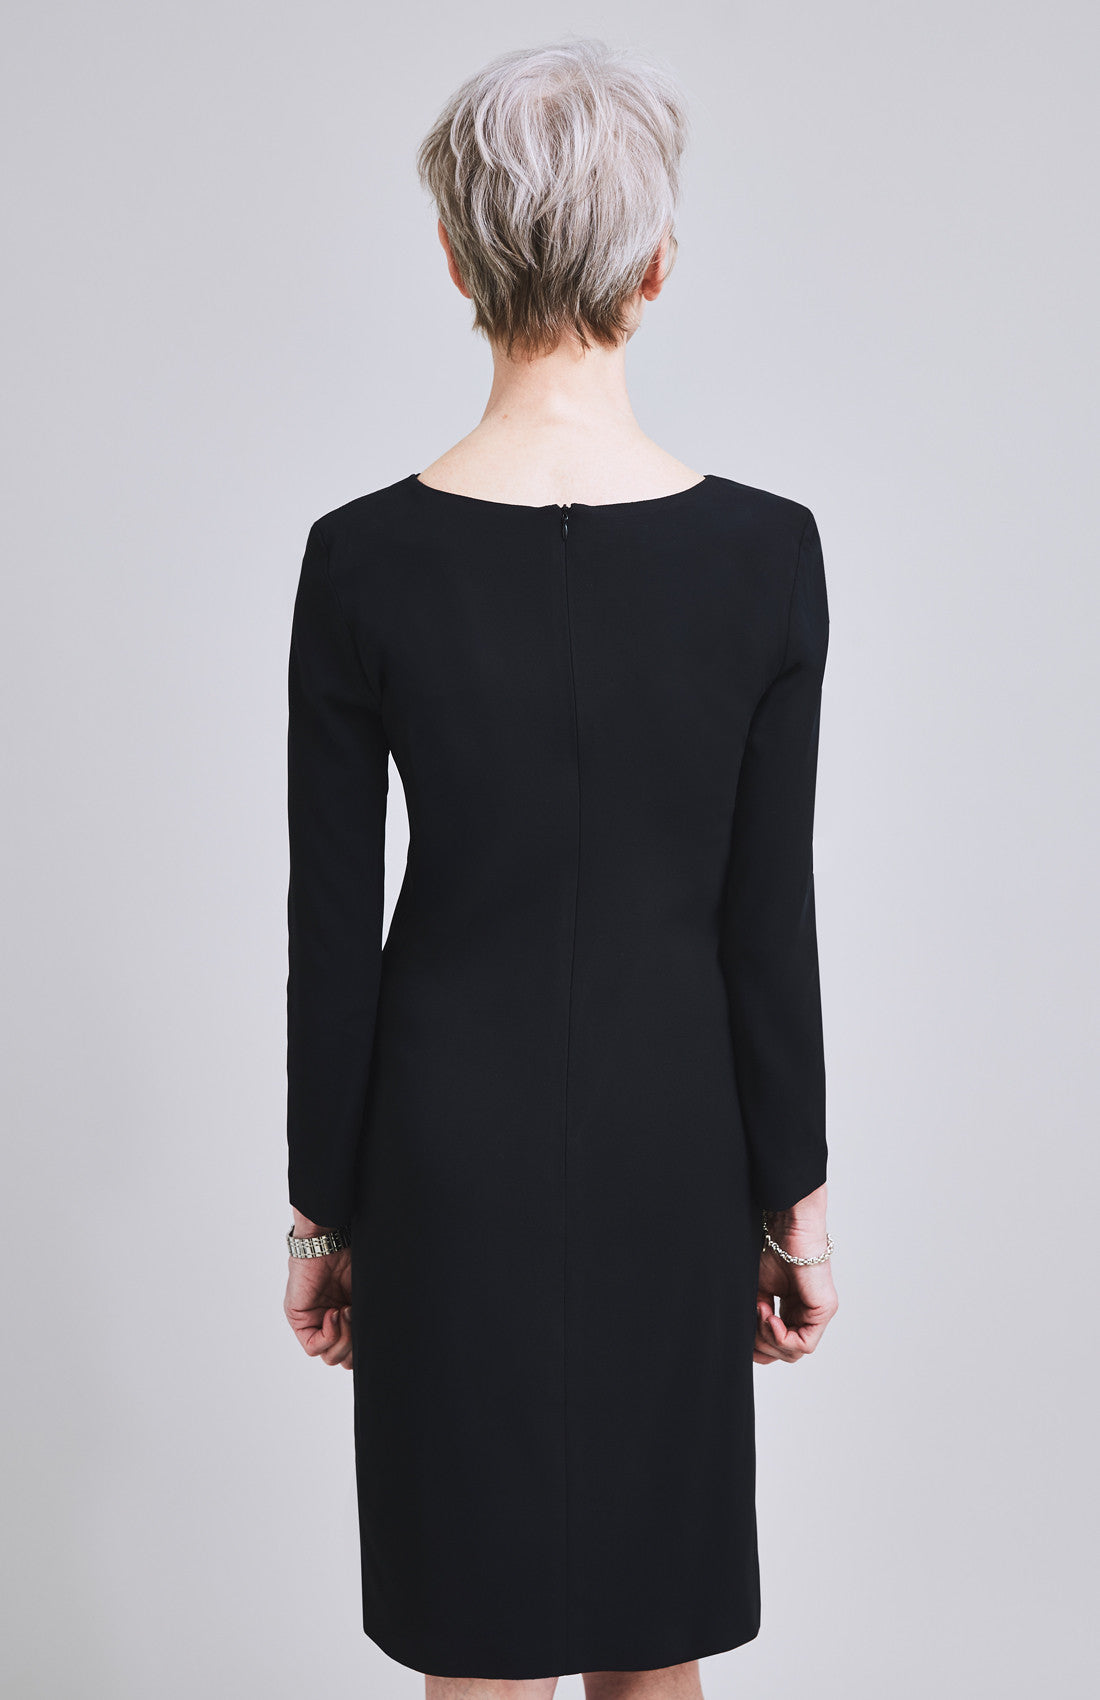 Long sleeve knee length office shift dress with twist neckline black